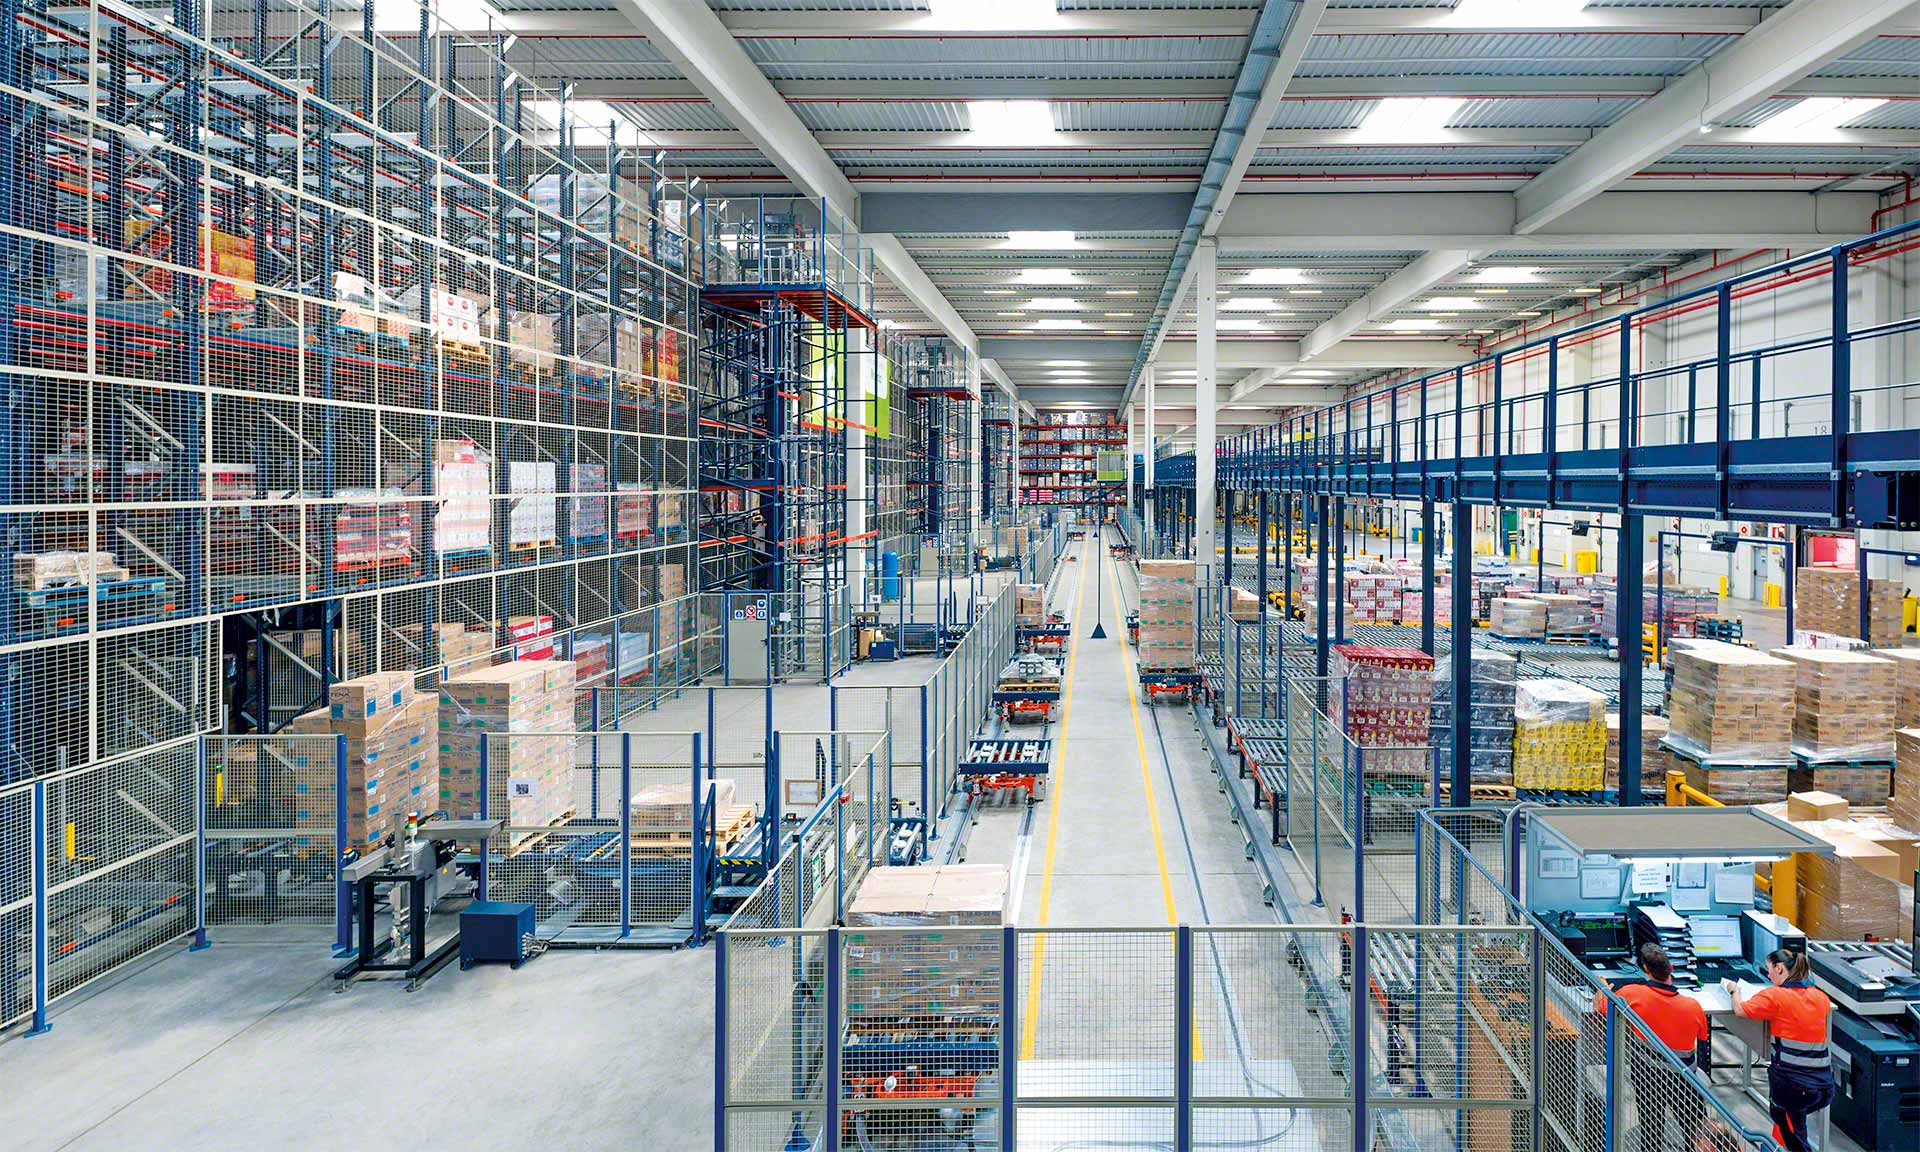 The just-in-case (JIC) inventory management strategy consists of storing goods and raw materials ahead of time